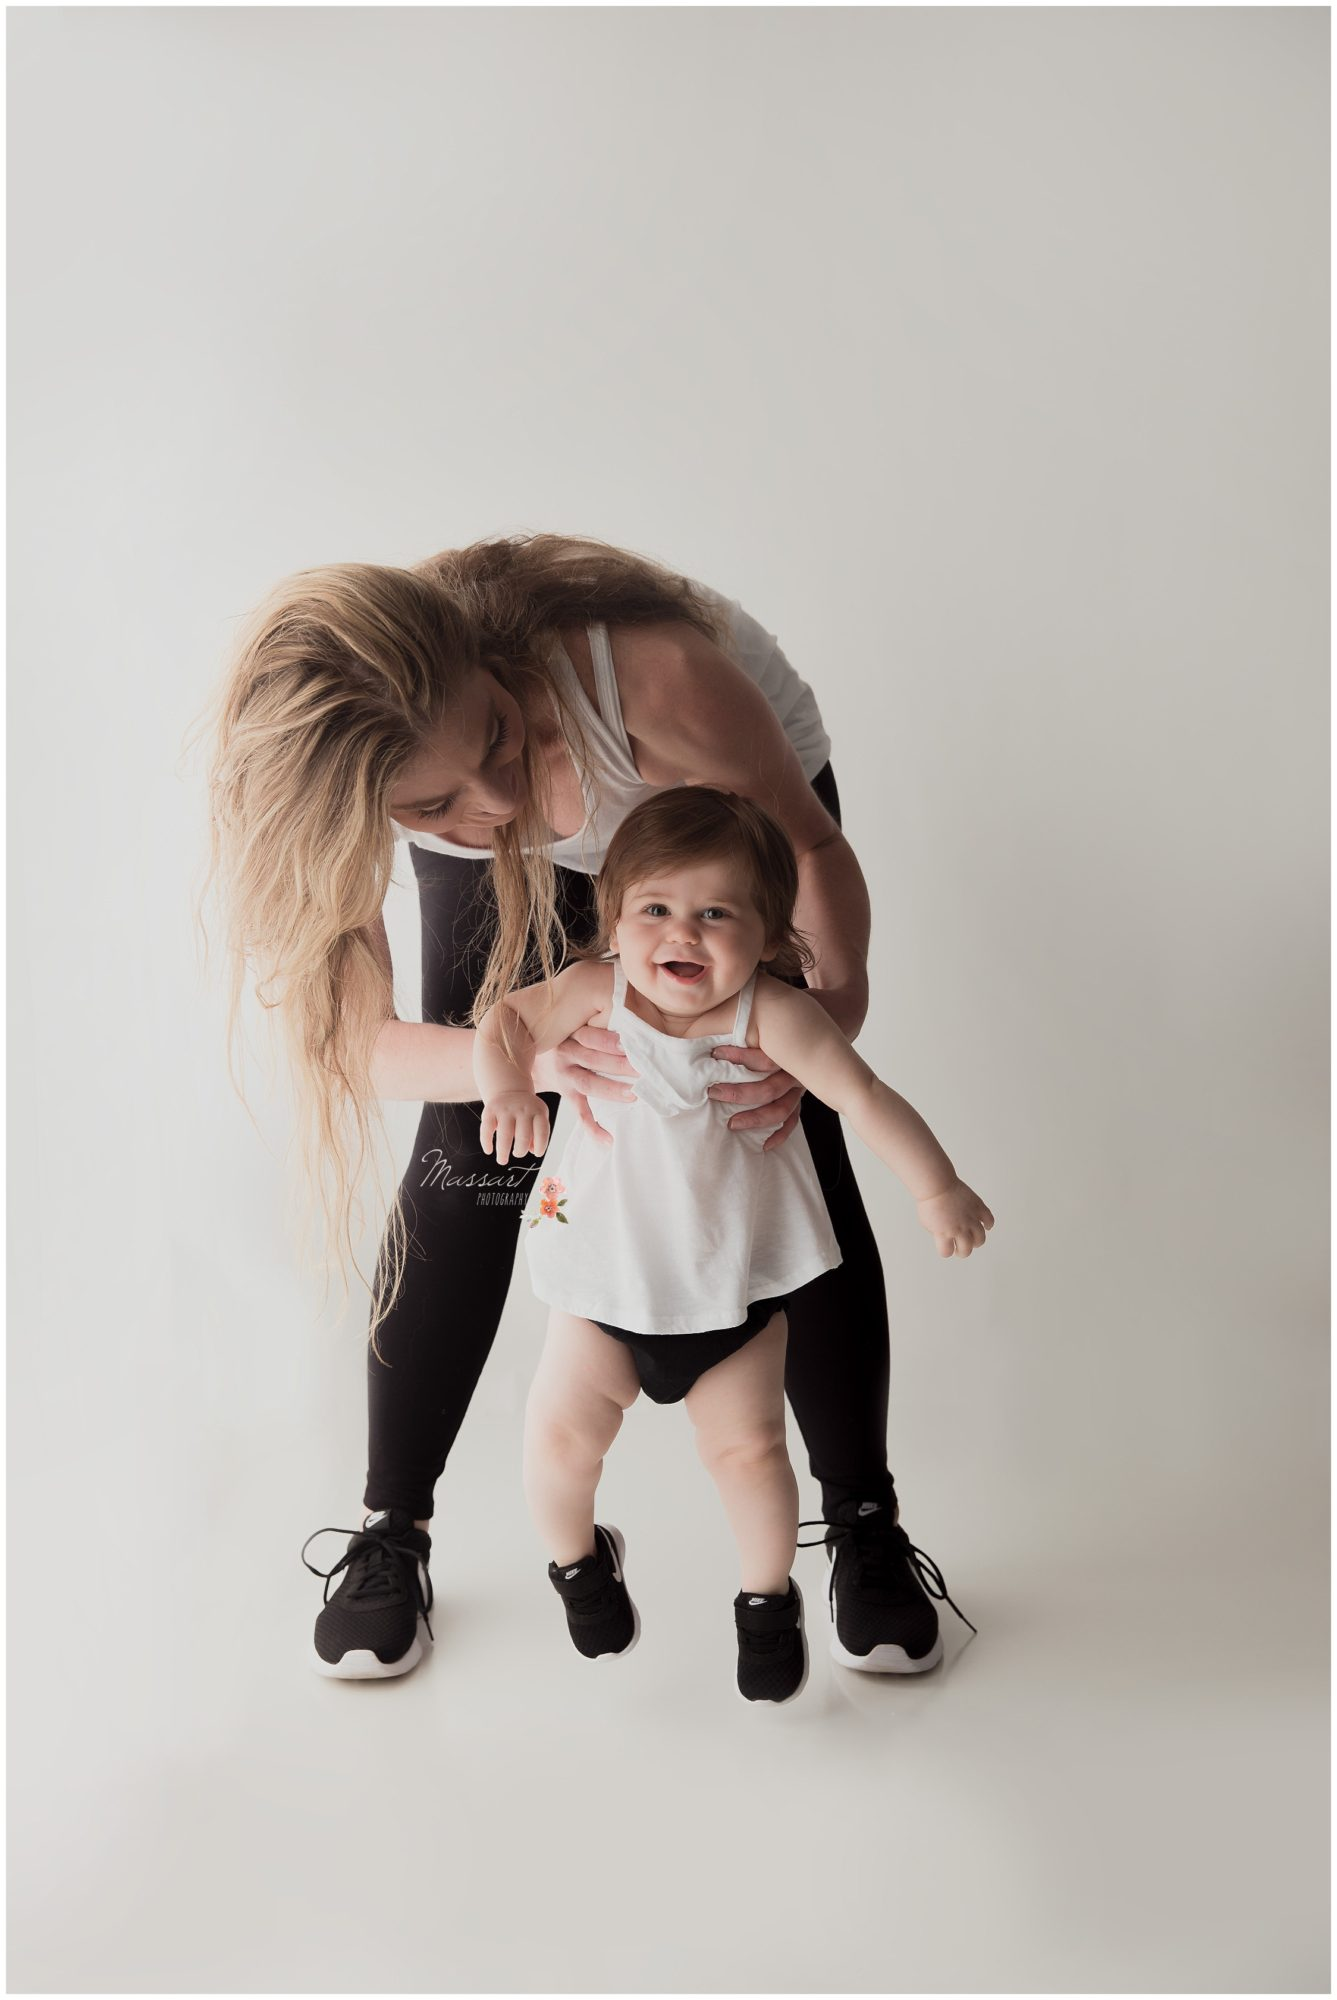 Mom and baby girl wear matching Nike's during baby's milestone session photographed by Massart Photography Rhode Island